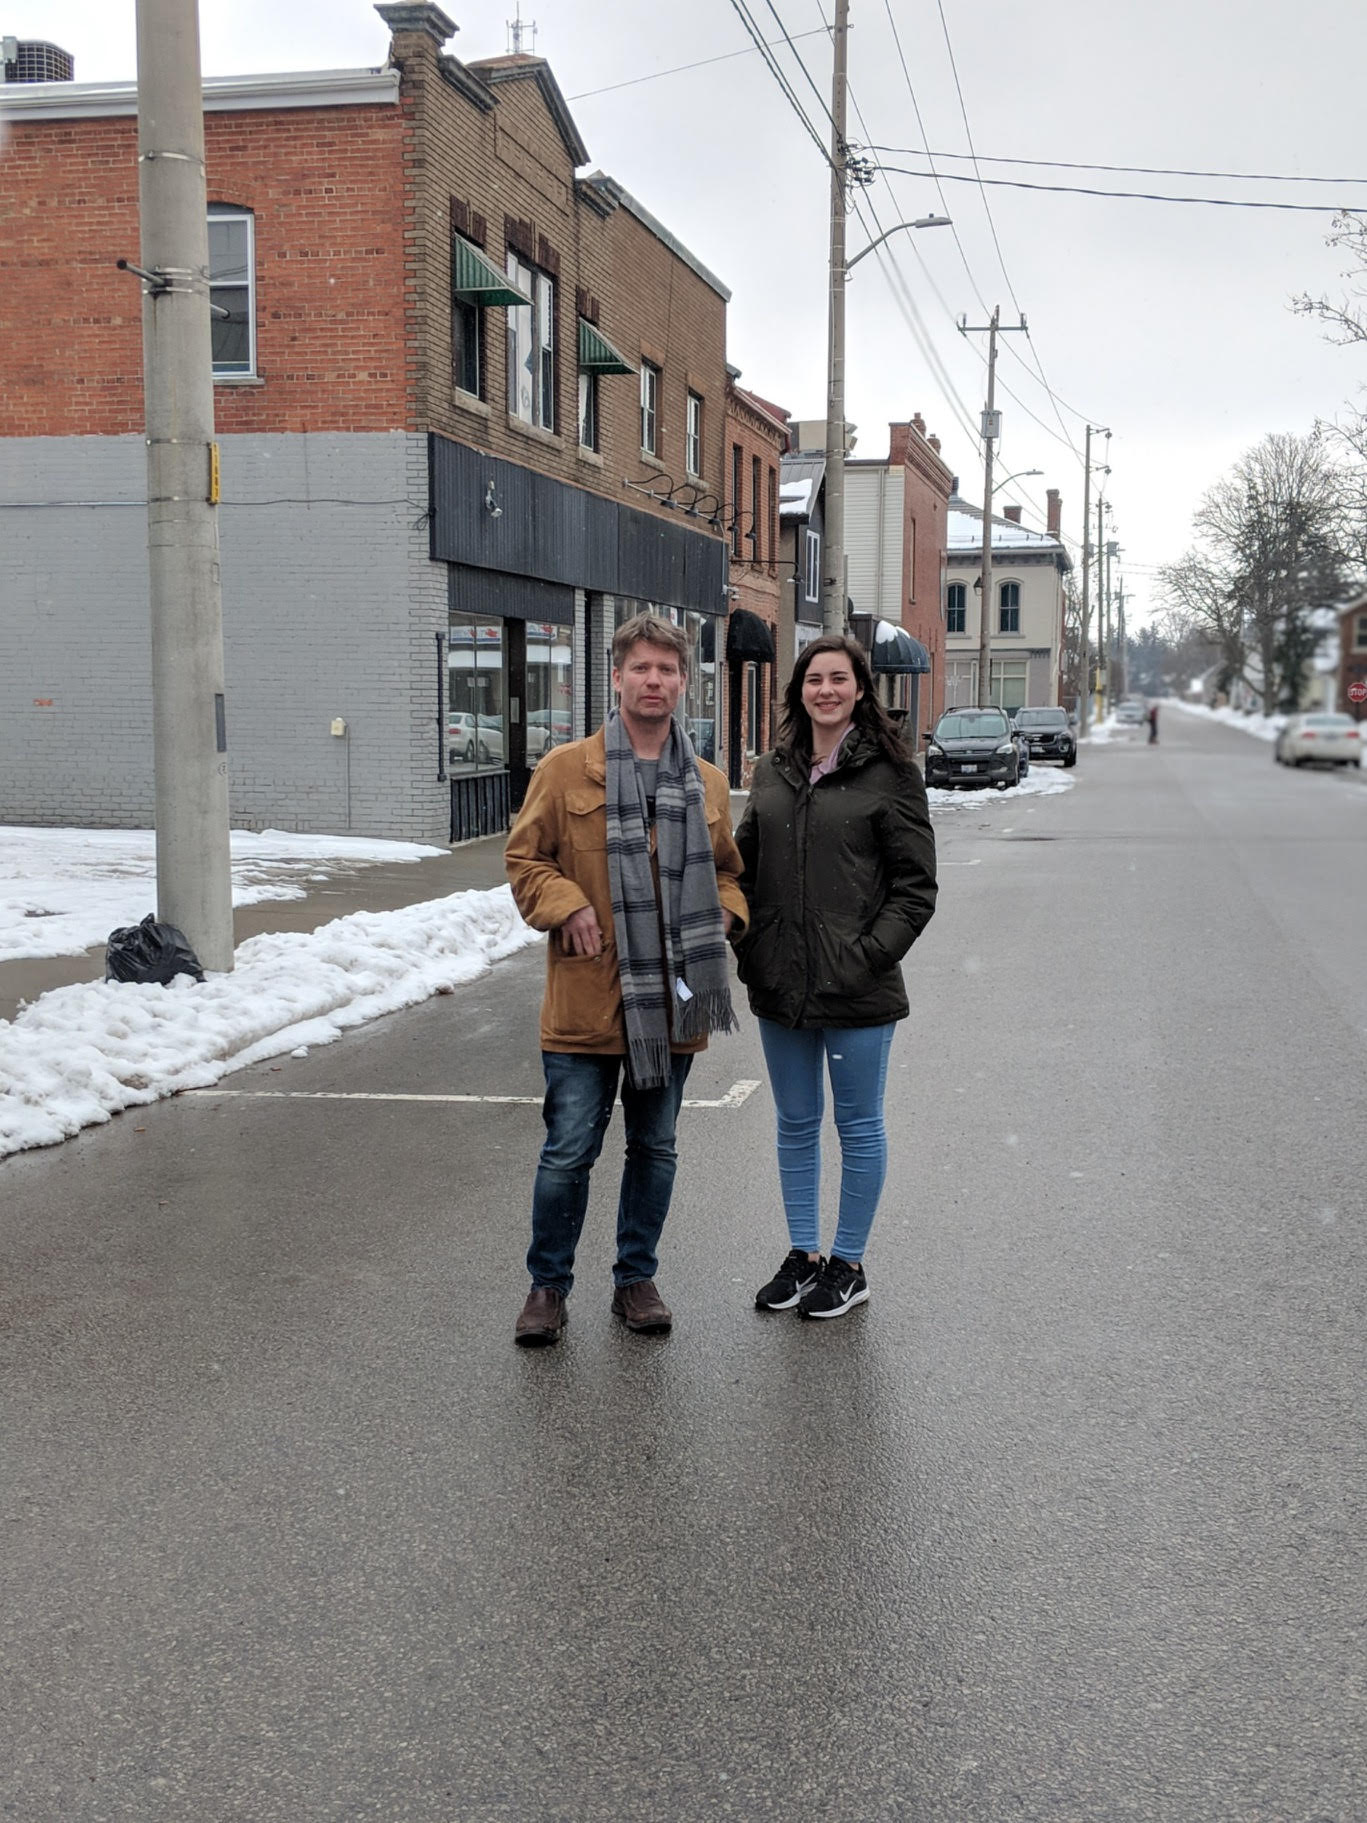 In the first photo, Jenn and Maddie stand on Dundas Place in London around the holidays, just after the flex-street opened up following construction. Notice the absence of curbs. In the second photo, Andrew and Emily stand on Kent Street in Simcoe. Perhaps this area in downtown Simcoe could be transformed into a flex-street, too.